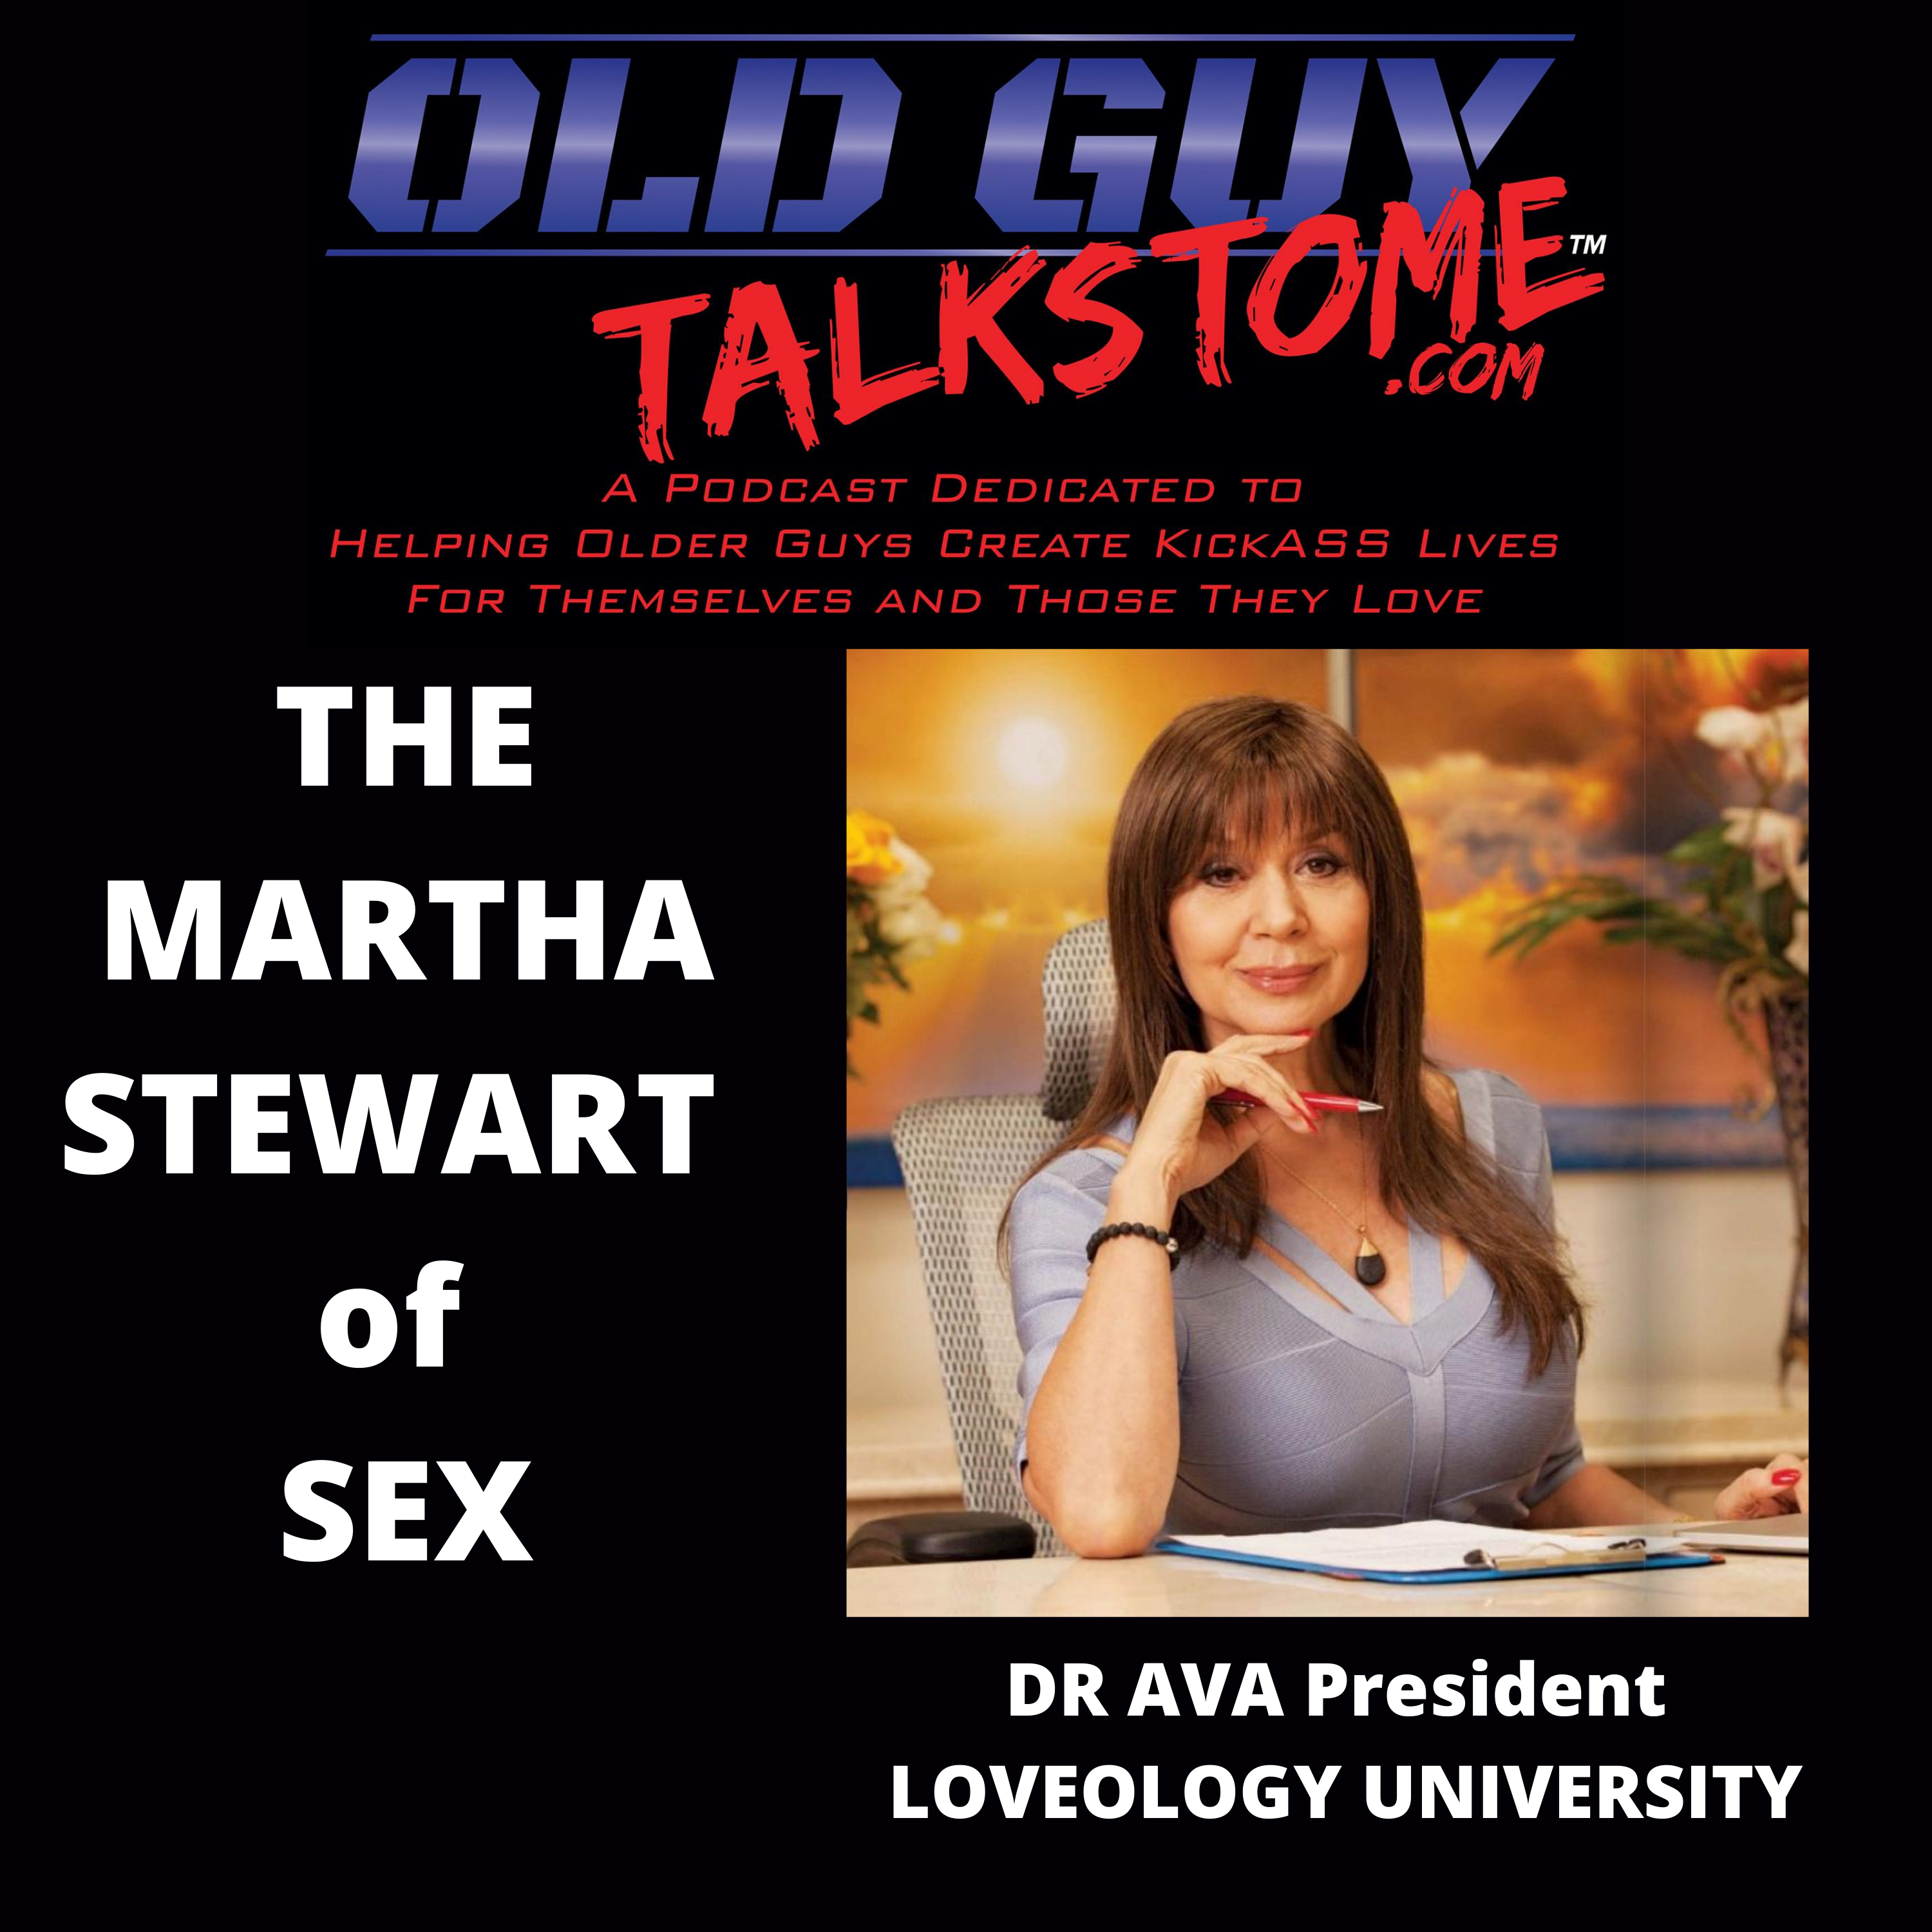 OldGuyTalksToMe - The Martha Stewart of Love and Sex